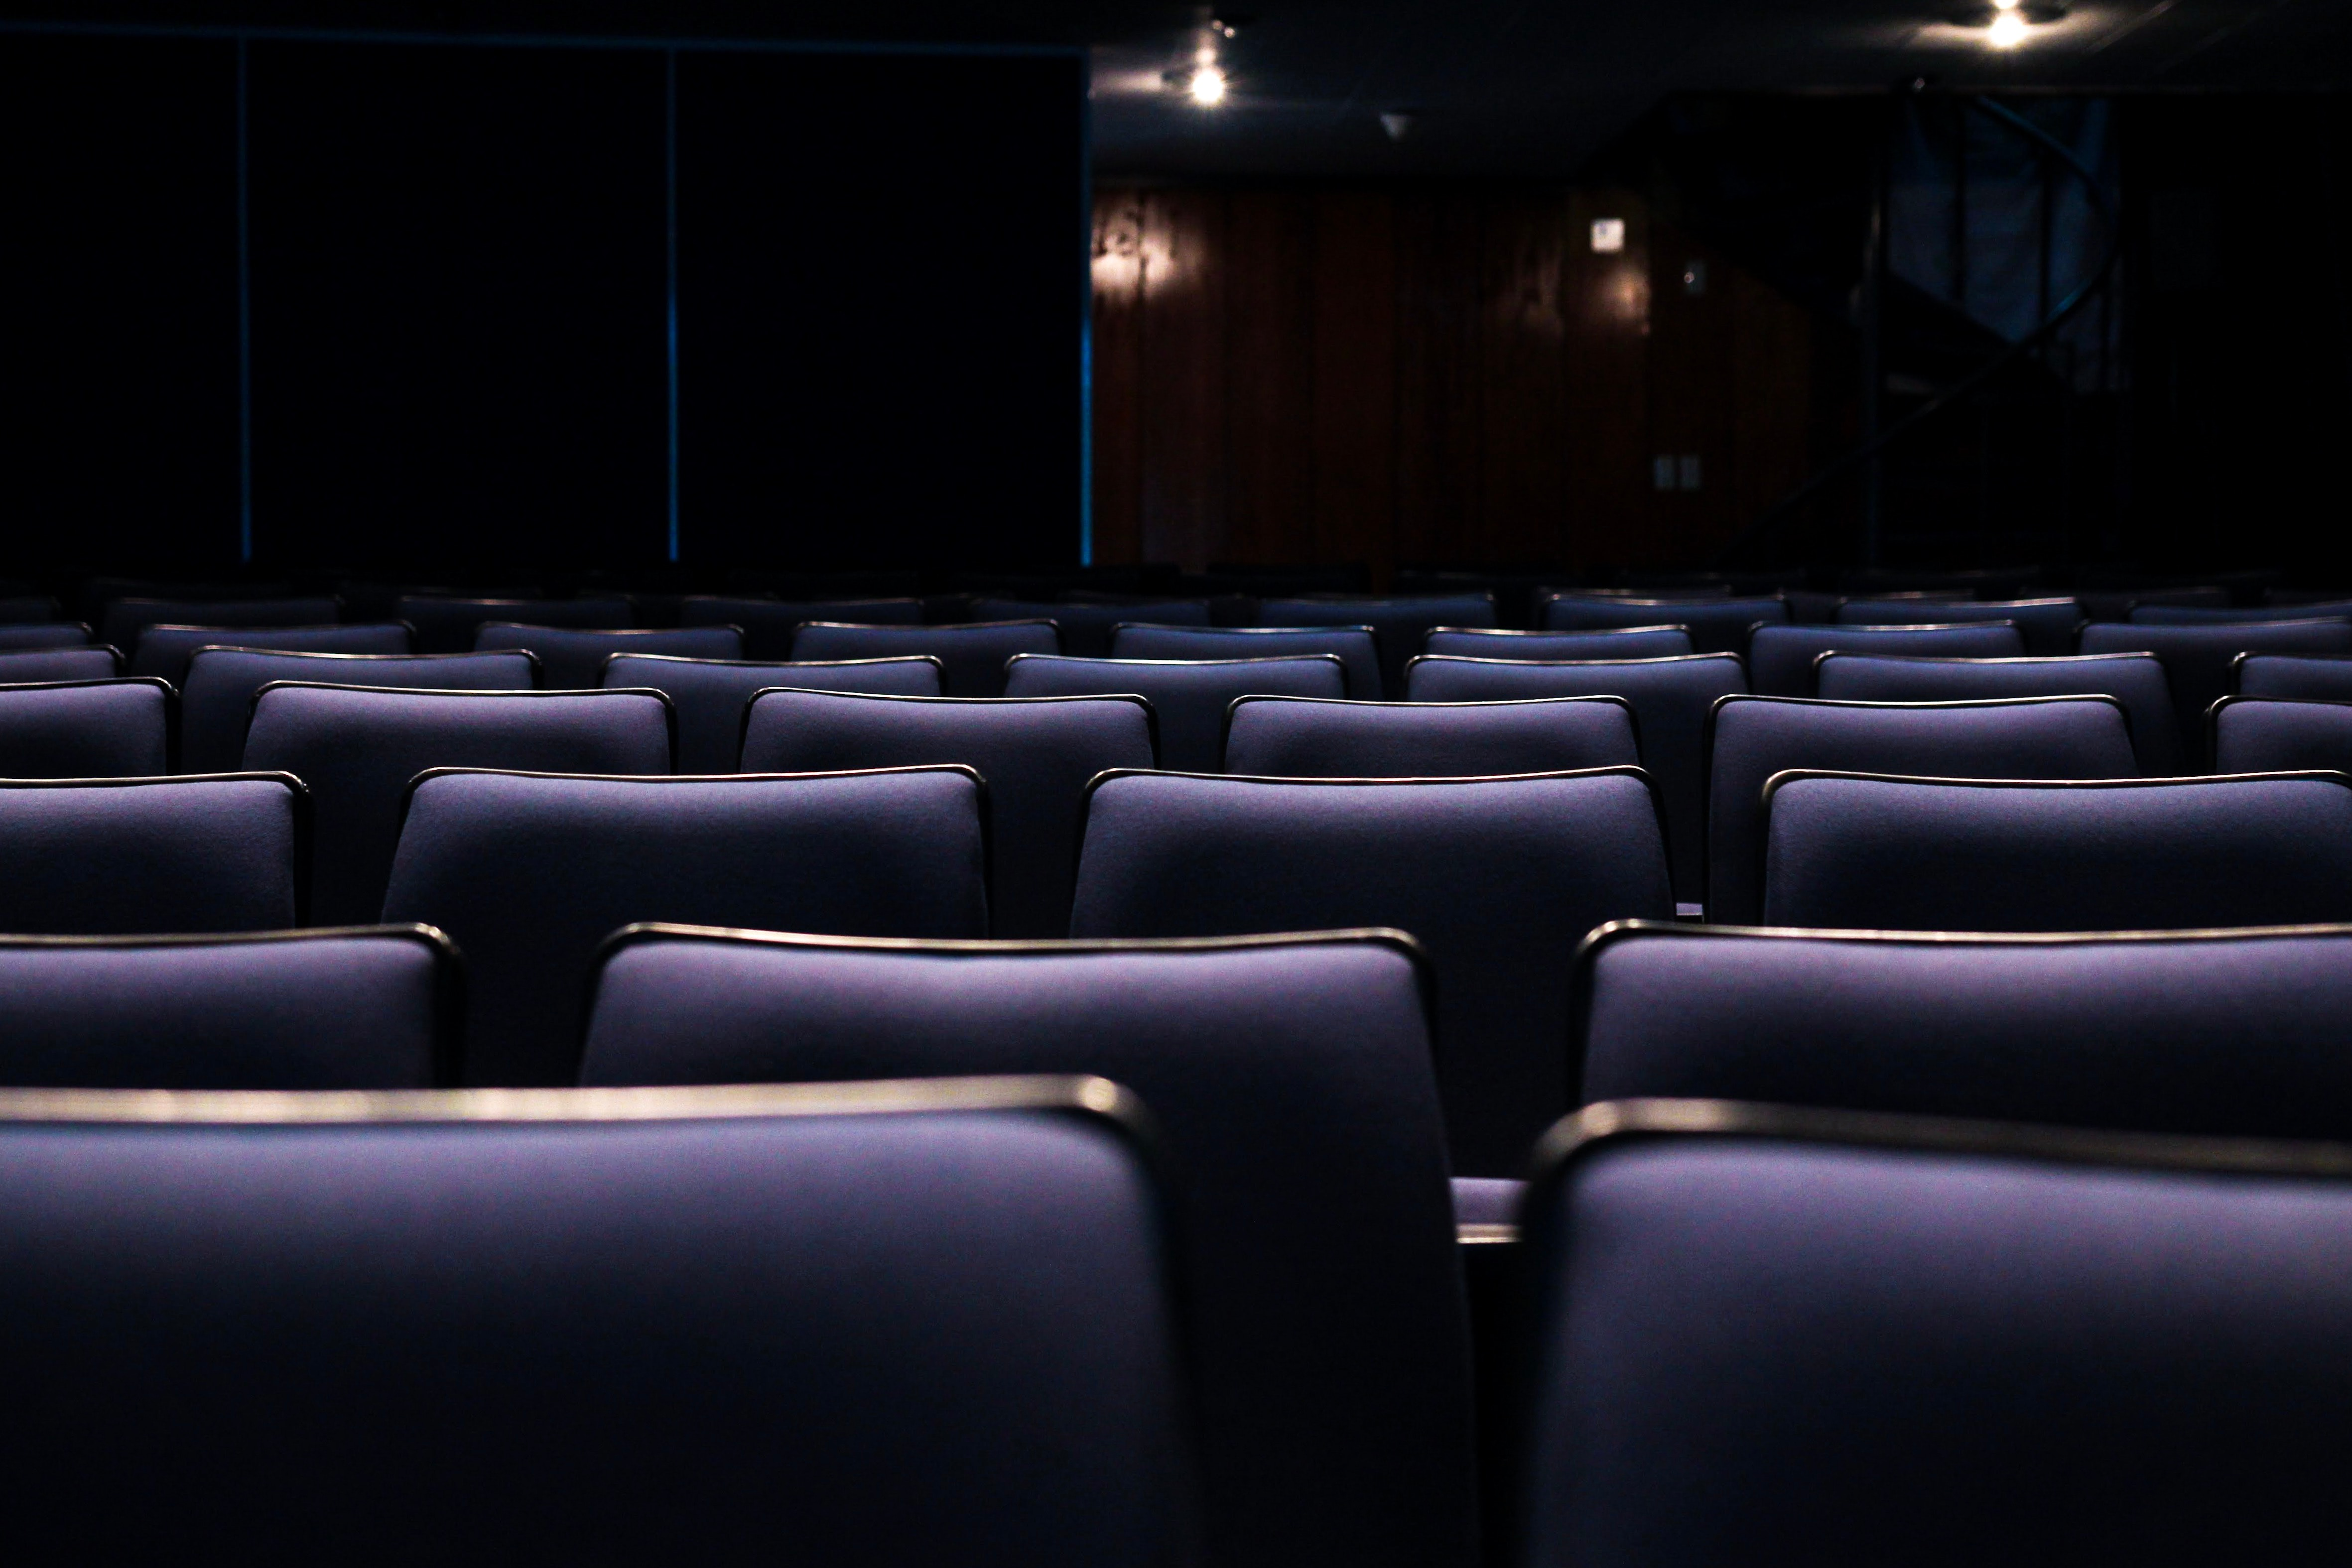 Salle De Cine Comment La Creer Dans Votre Maison